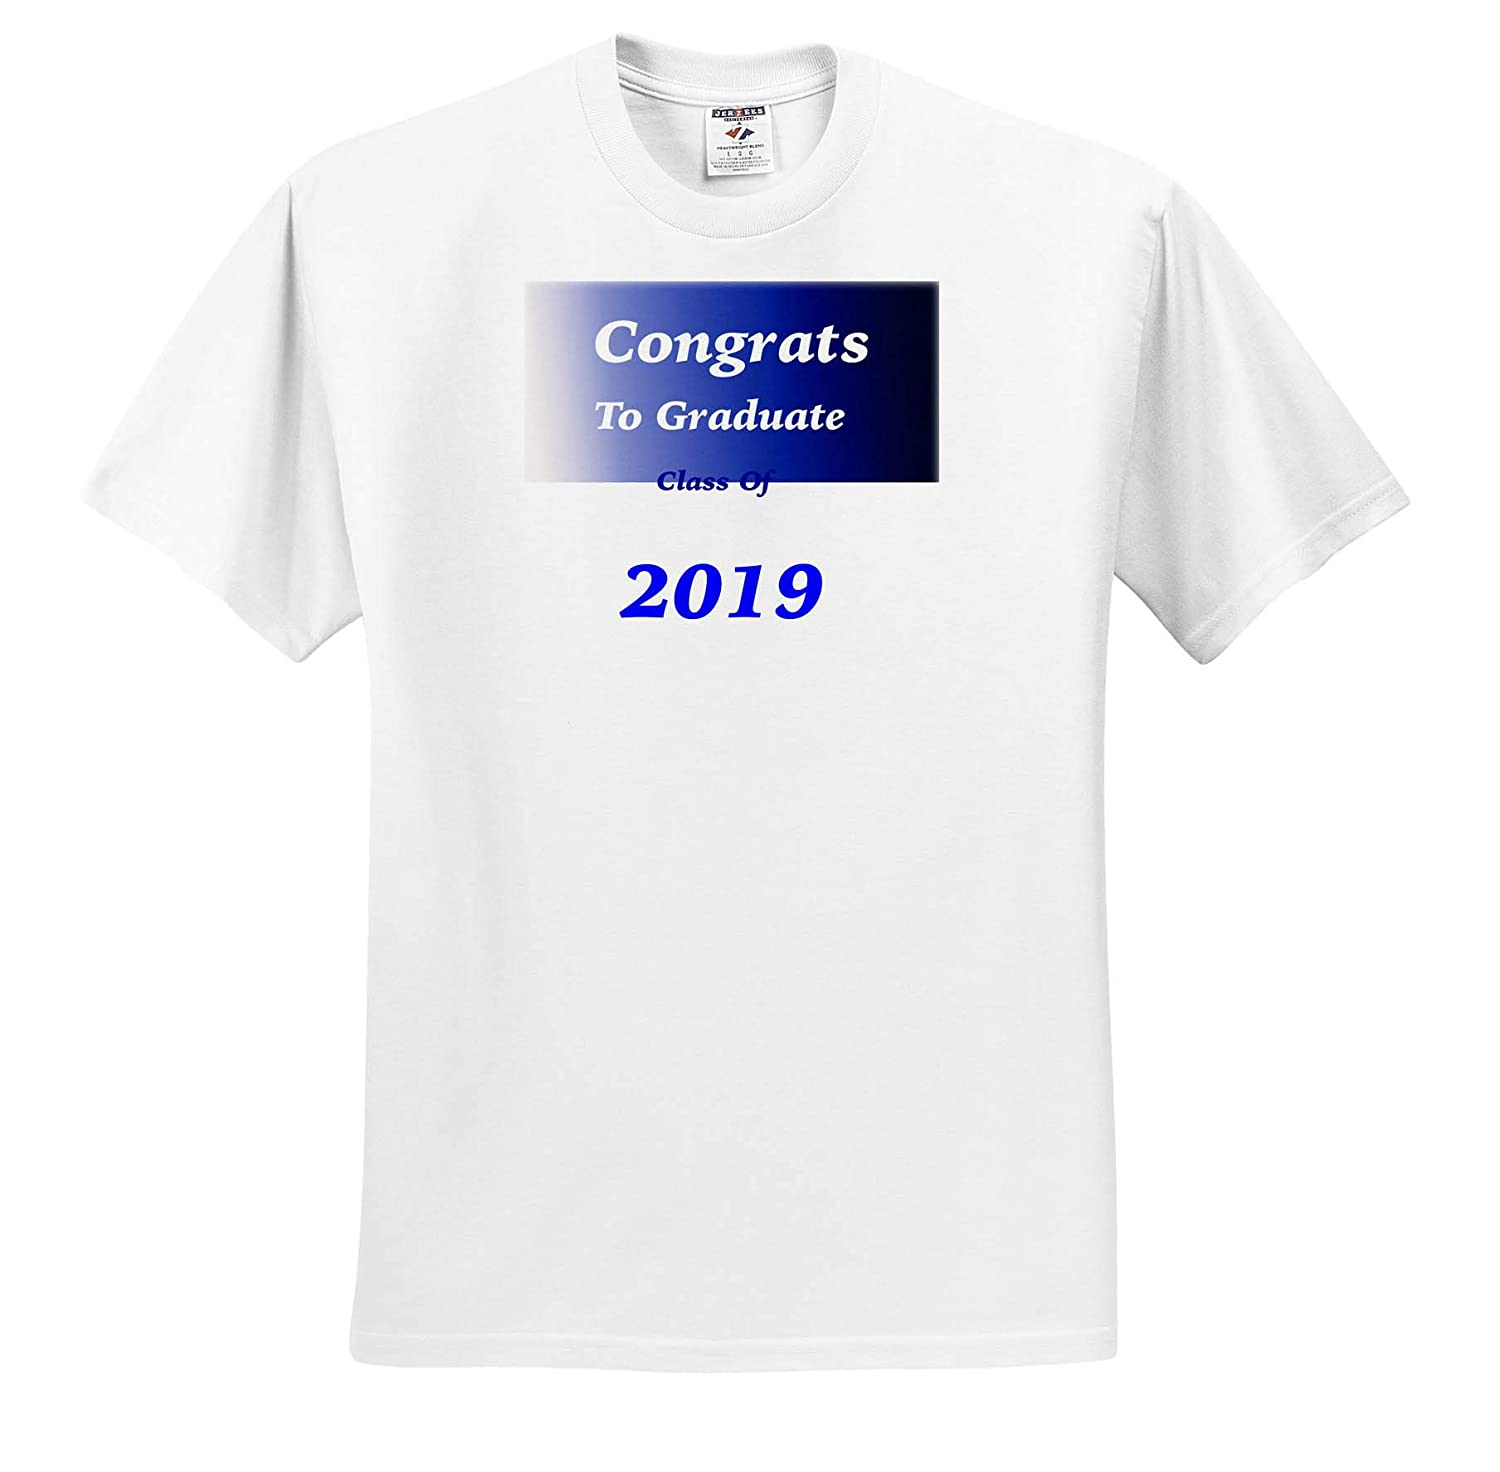 3dRose Lens Art by Florene Graduation T-Shirts Image of Congrats to Class 2019 On Blue White Gradient